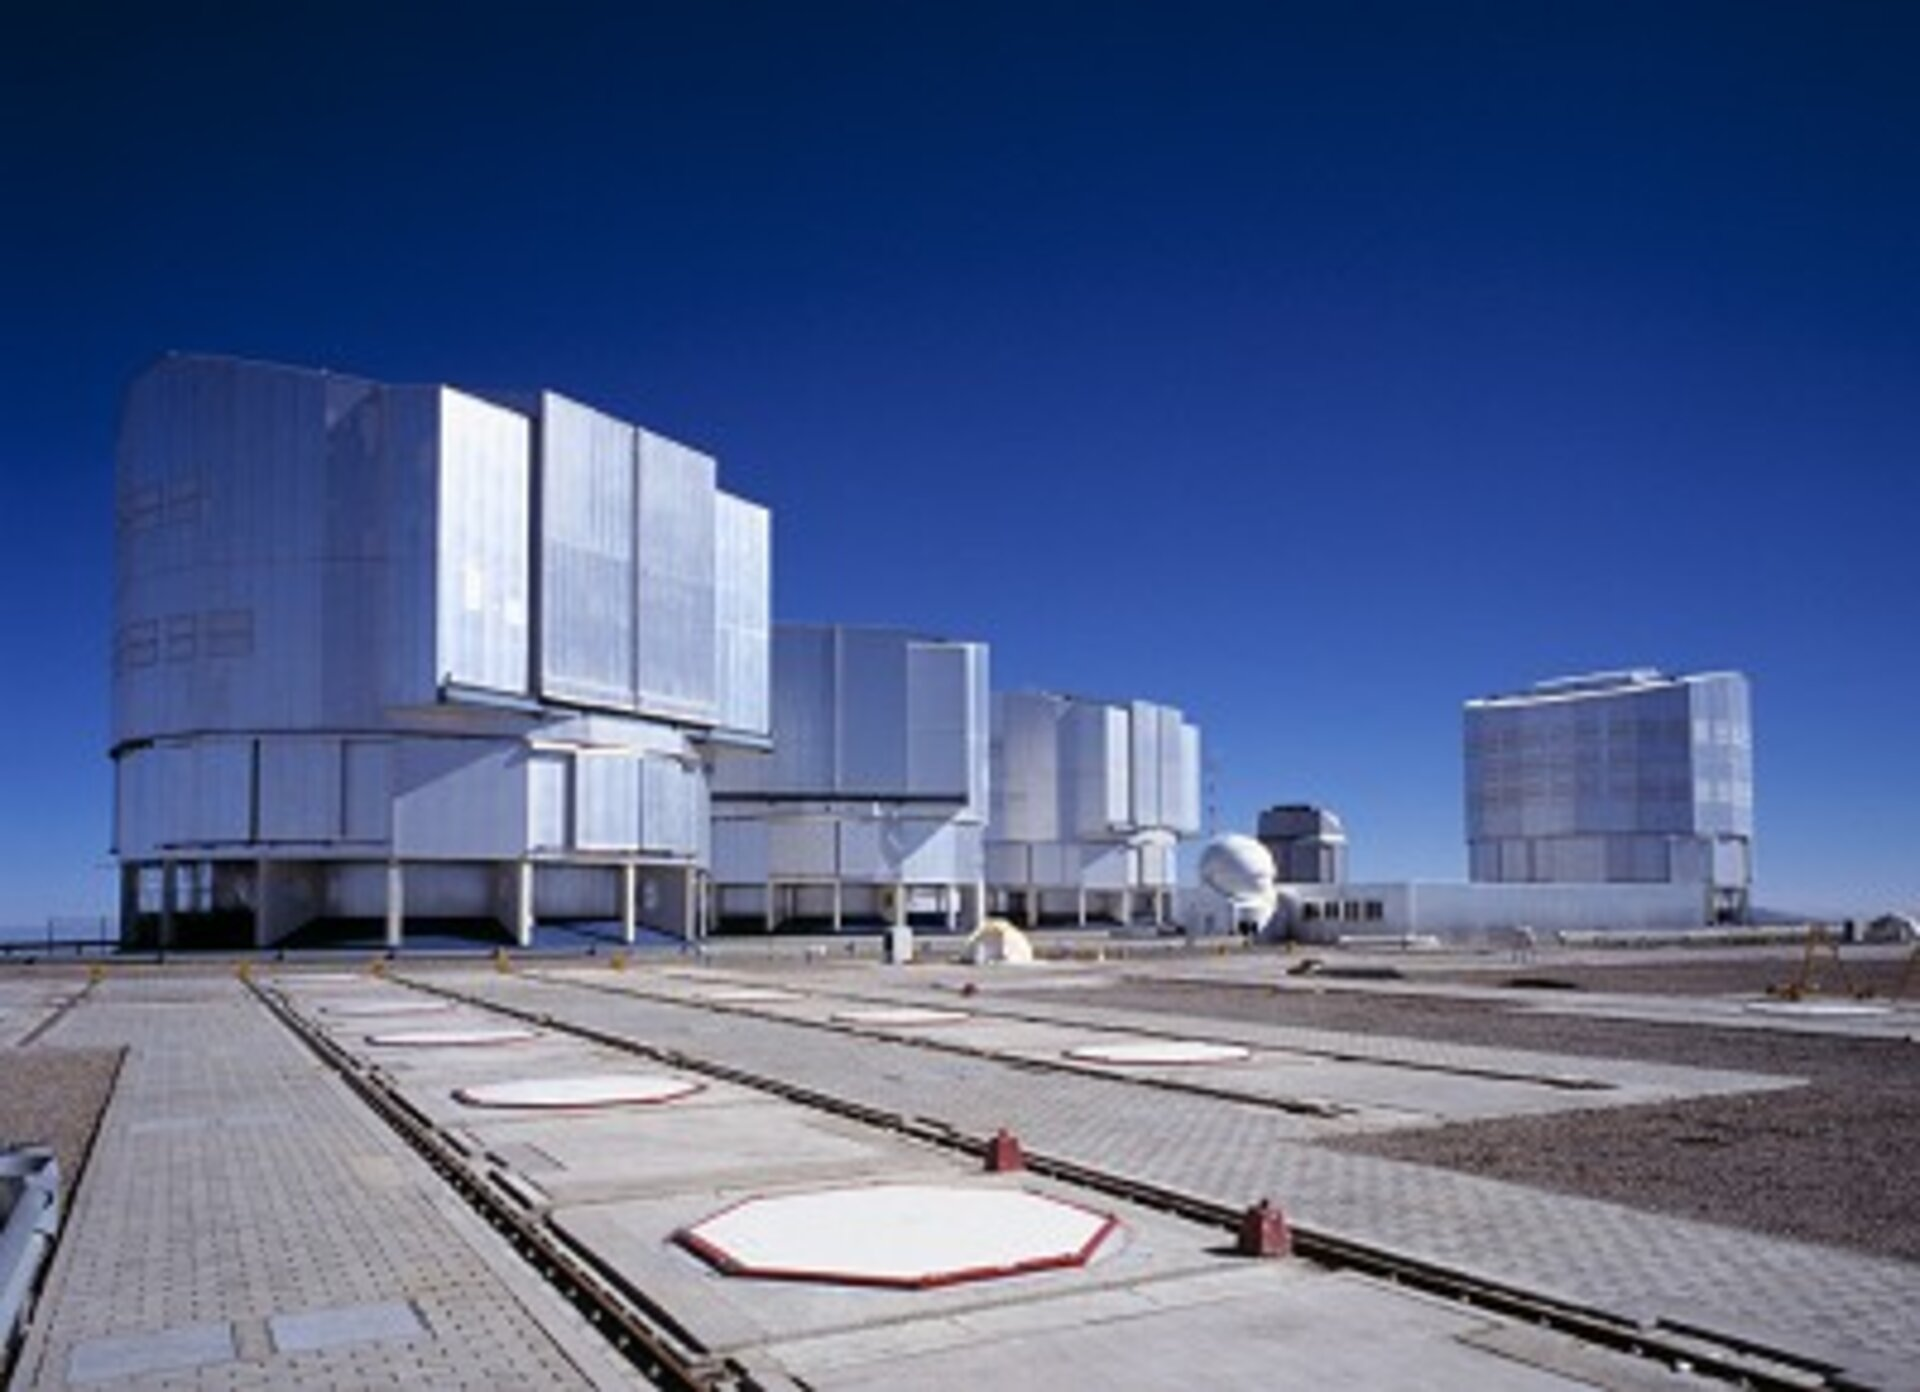 The Very Large Telescope (VLT) at Cerro Paranal, Chile